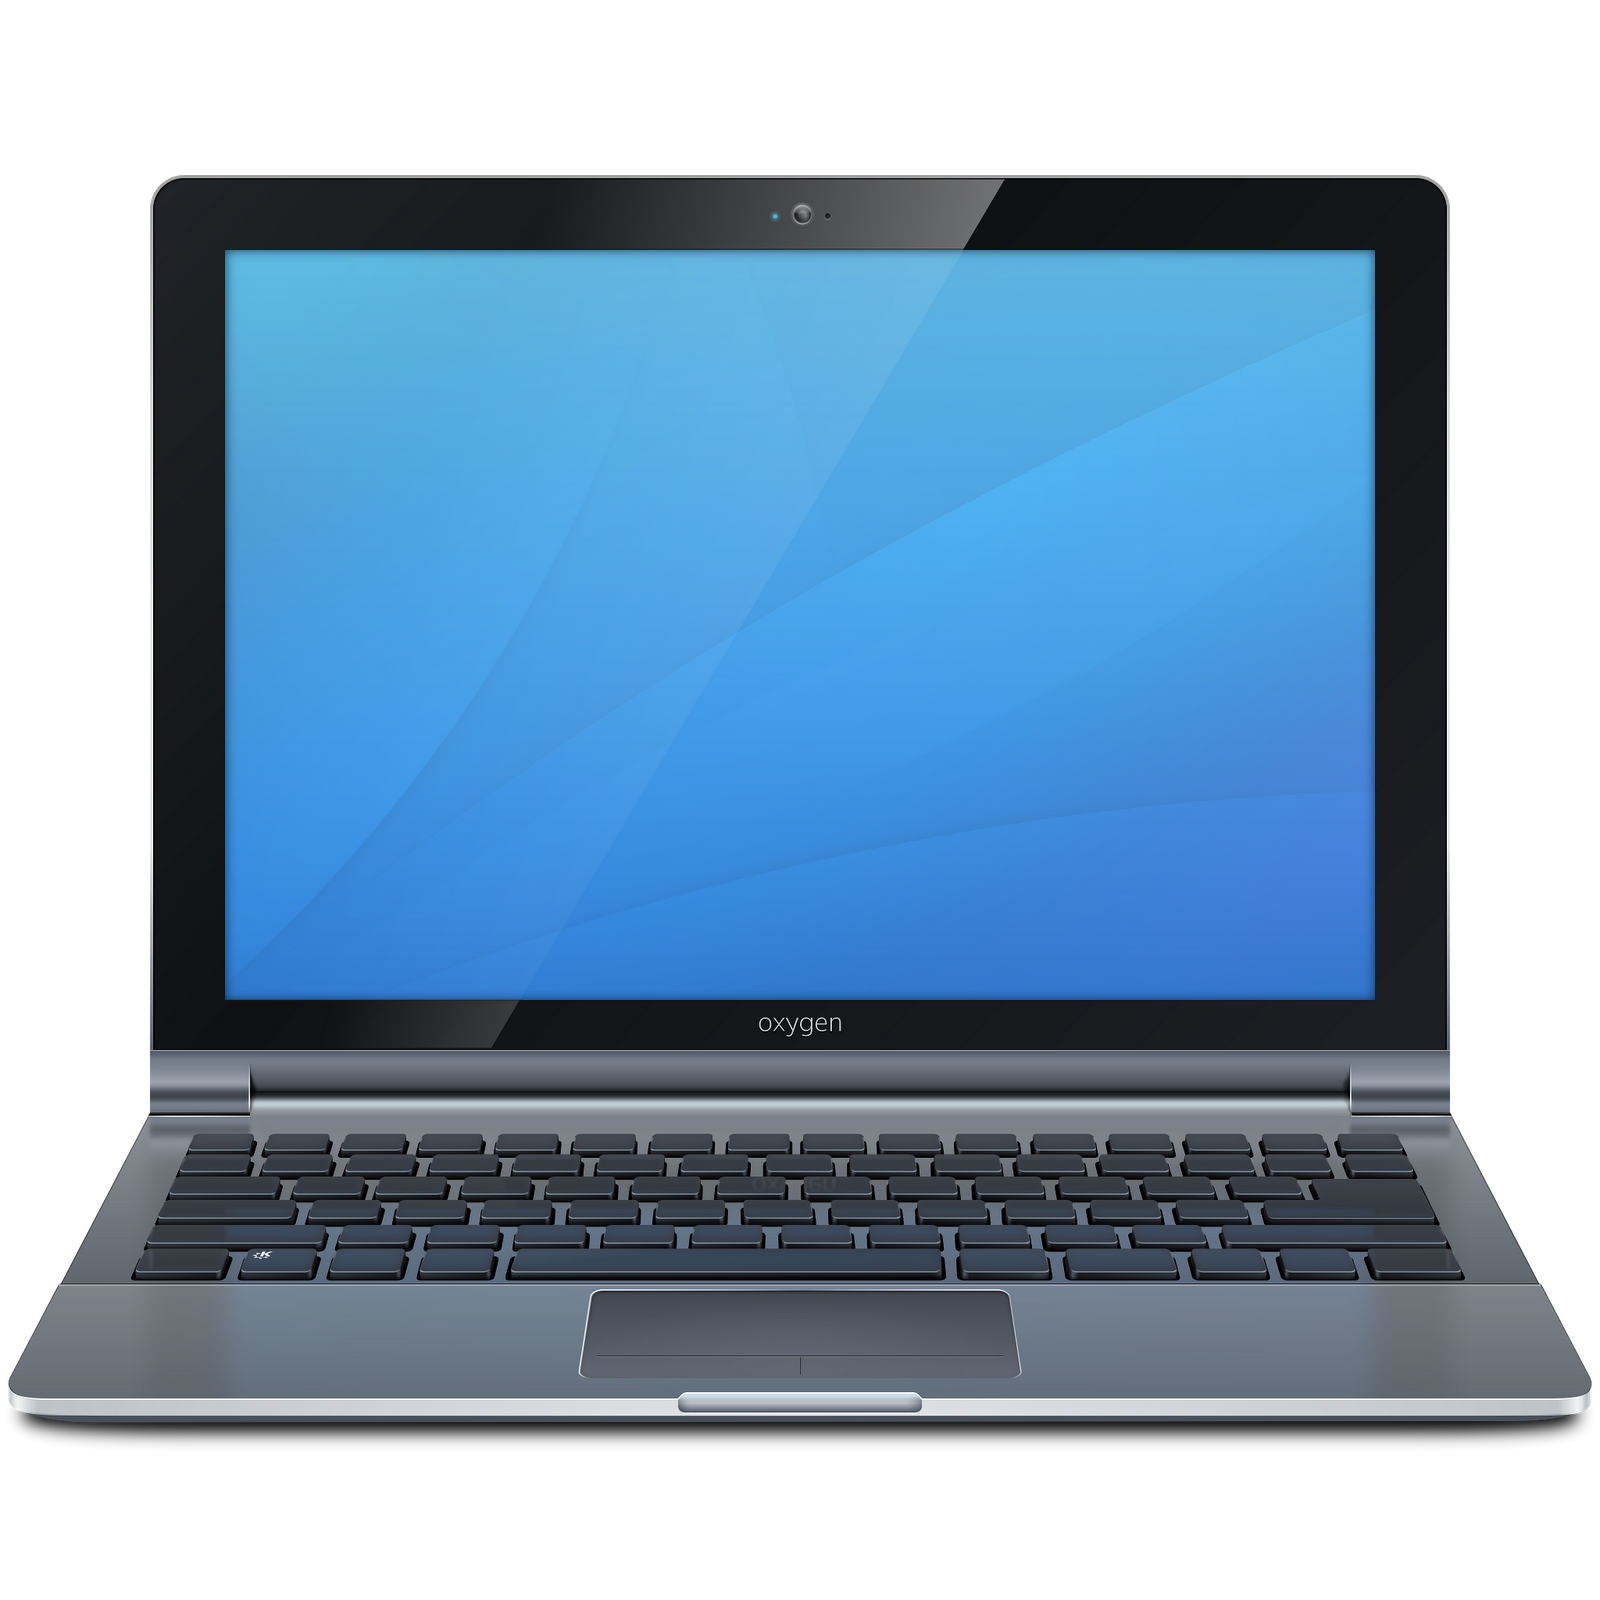 Download And Use Laptop Png Clipart image #6769